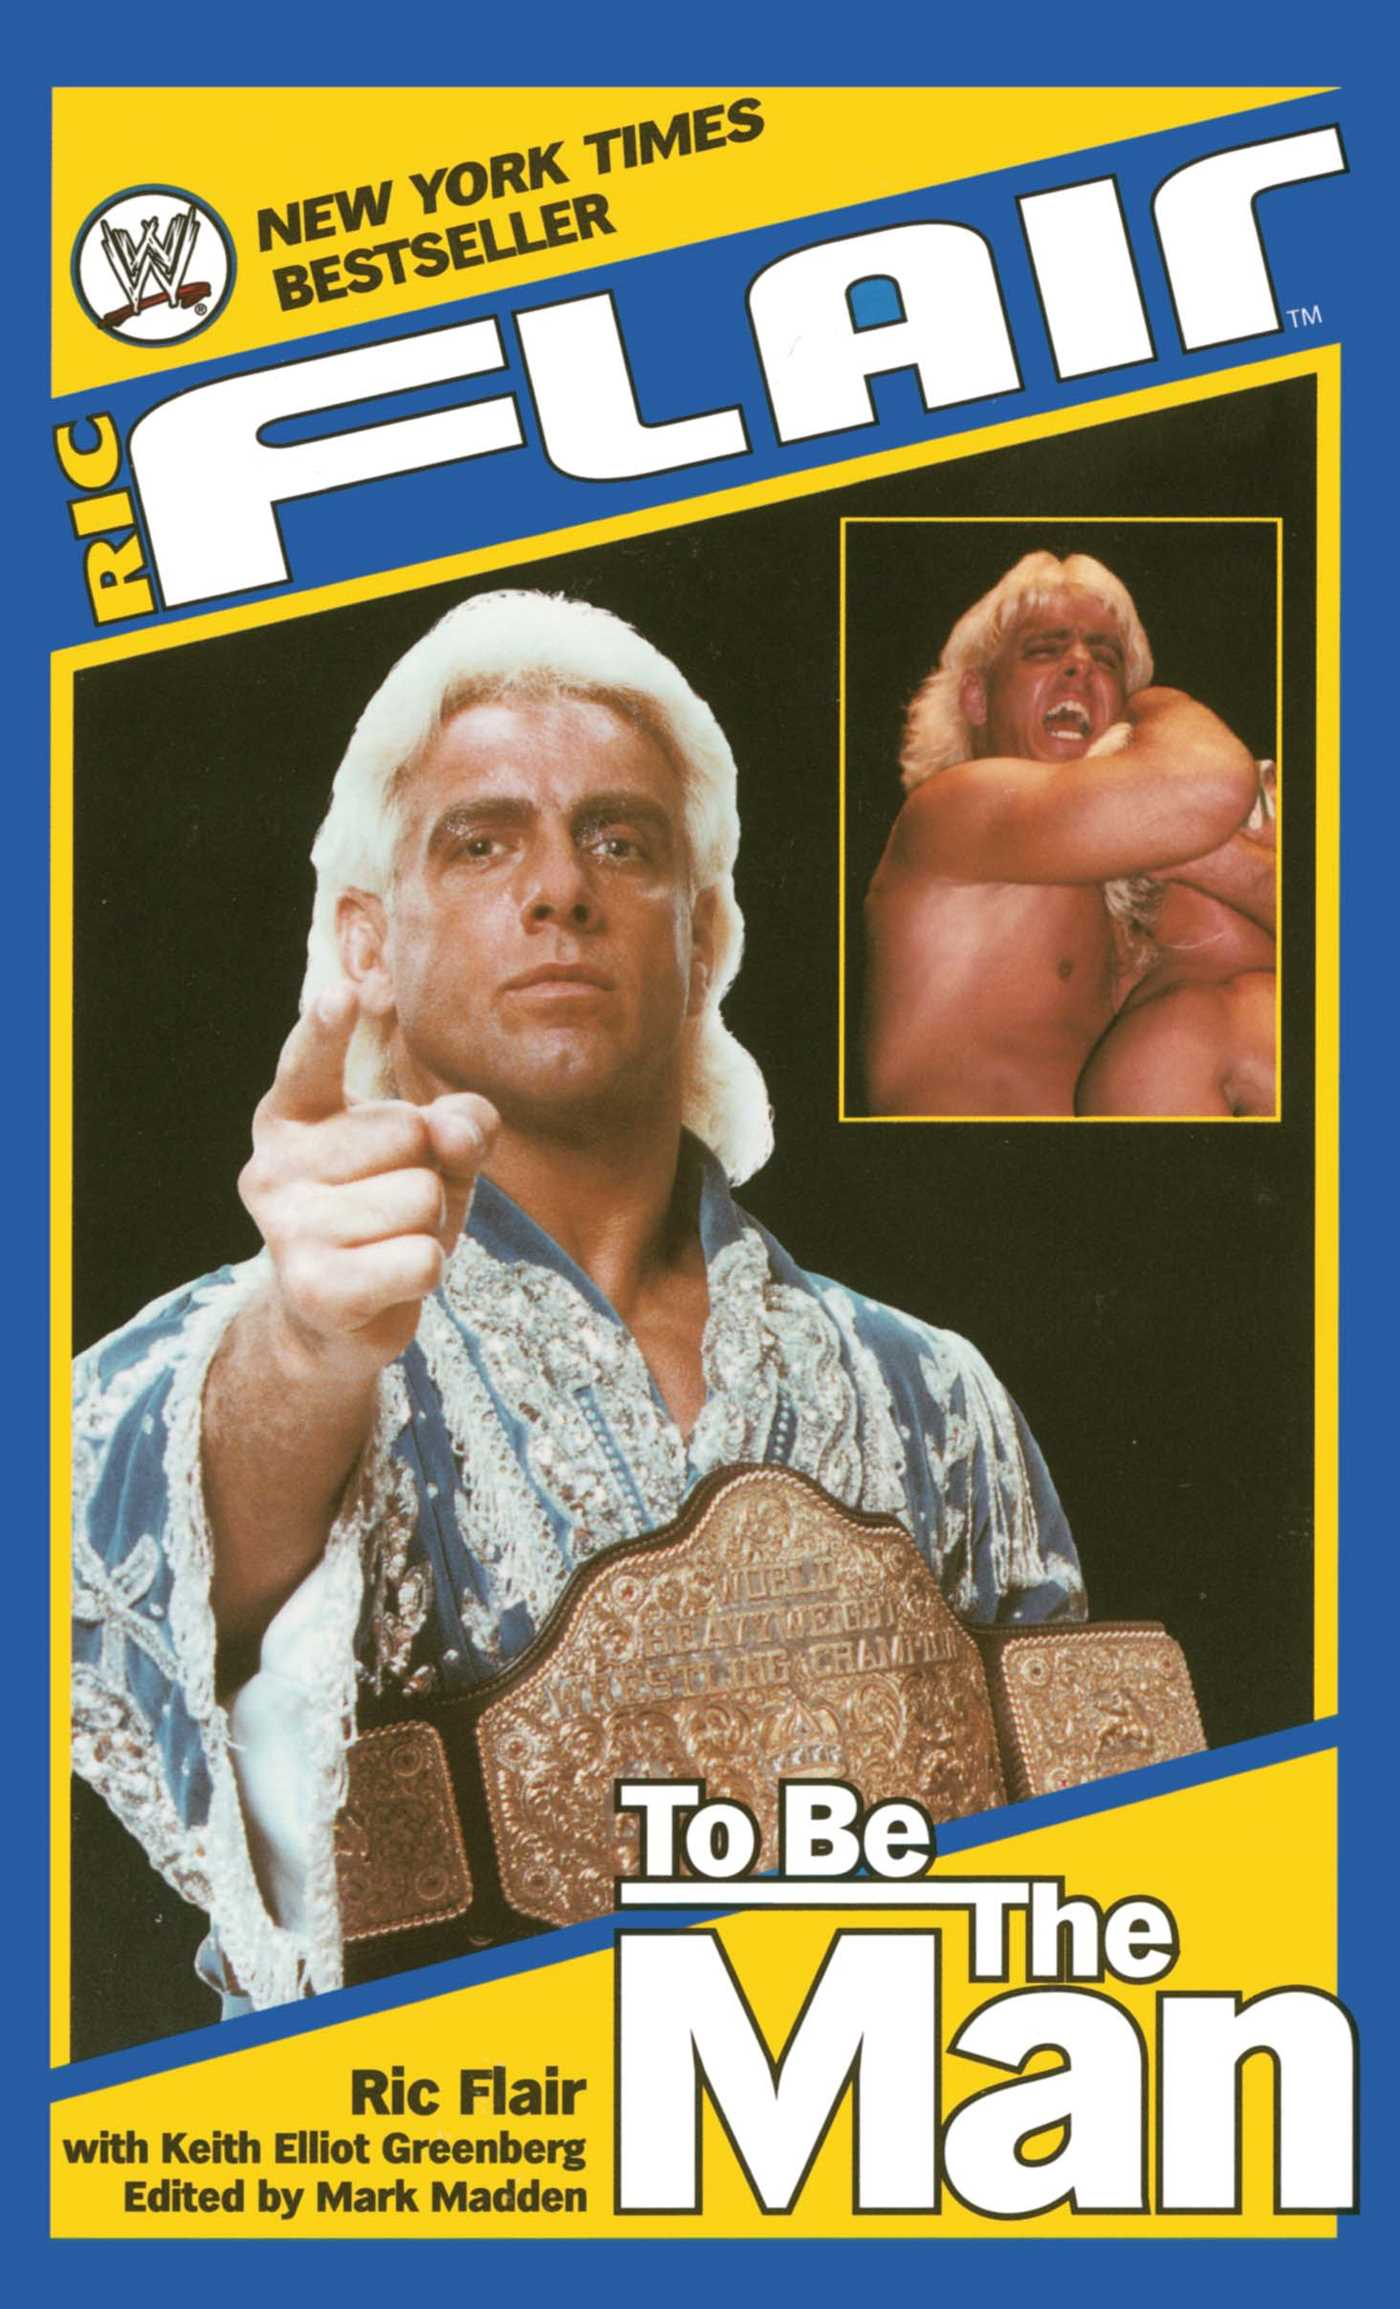 Ric-flair-to-be-the-man-9781439121740_hr